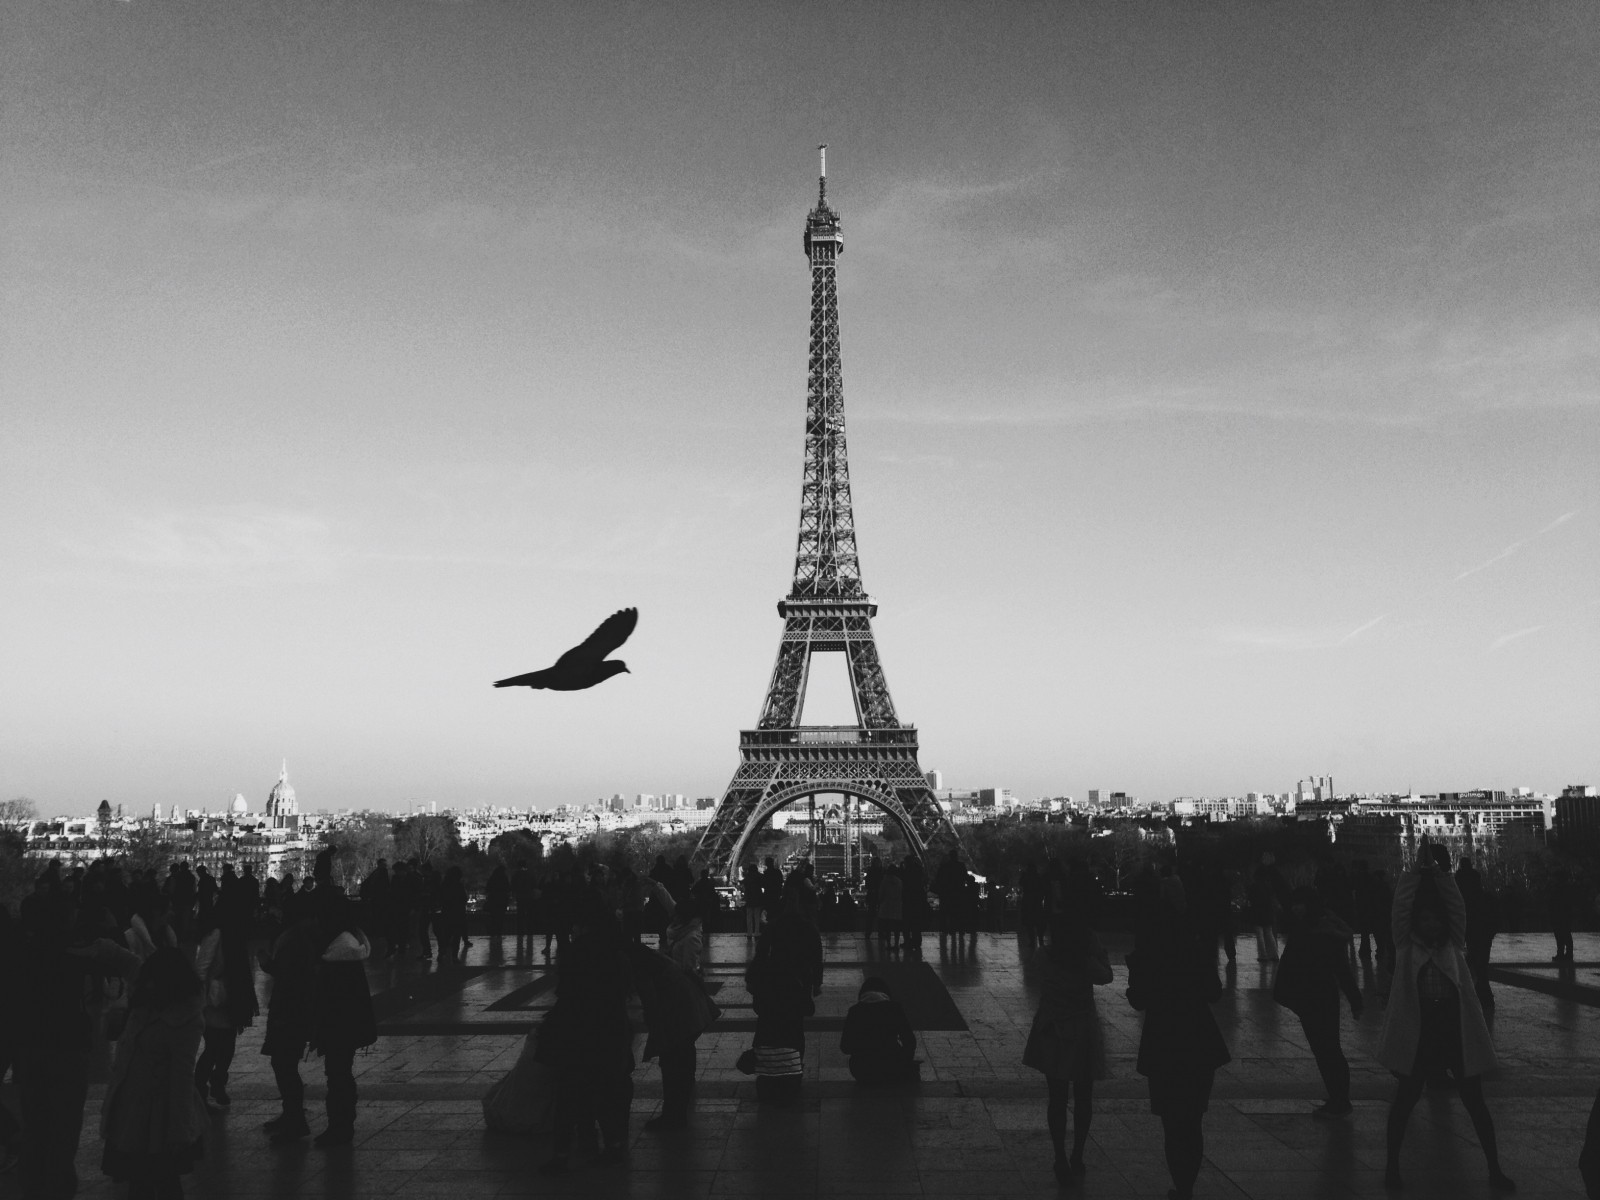 black-and-white-image-of-bird-flying-over-square-with-eiffel-tower-in-background